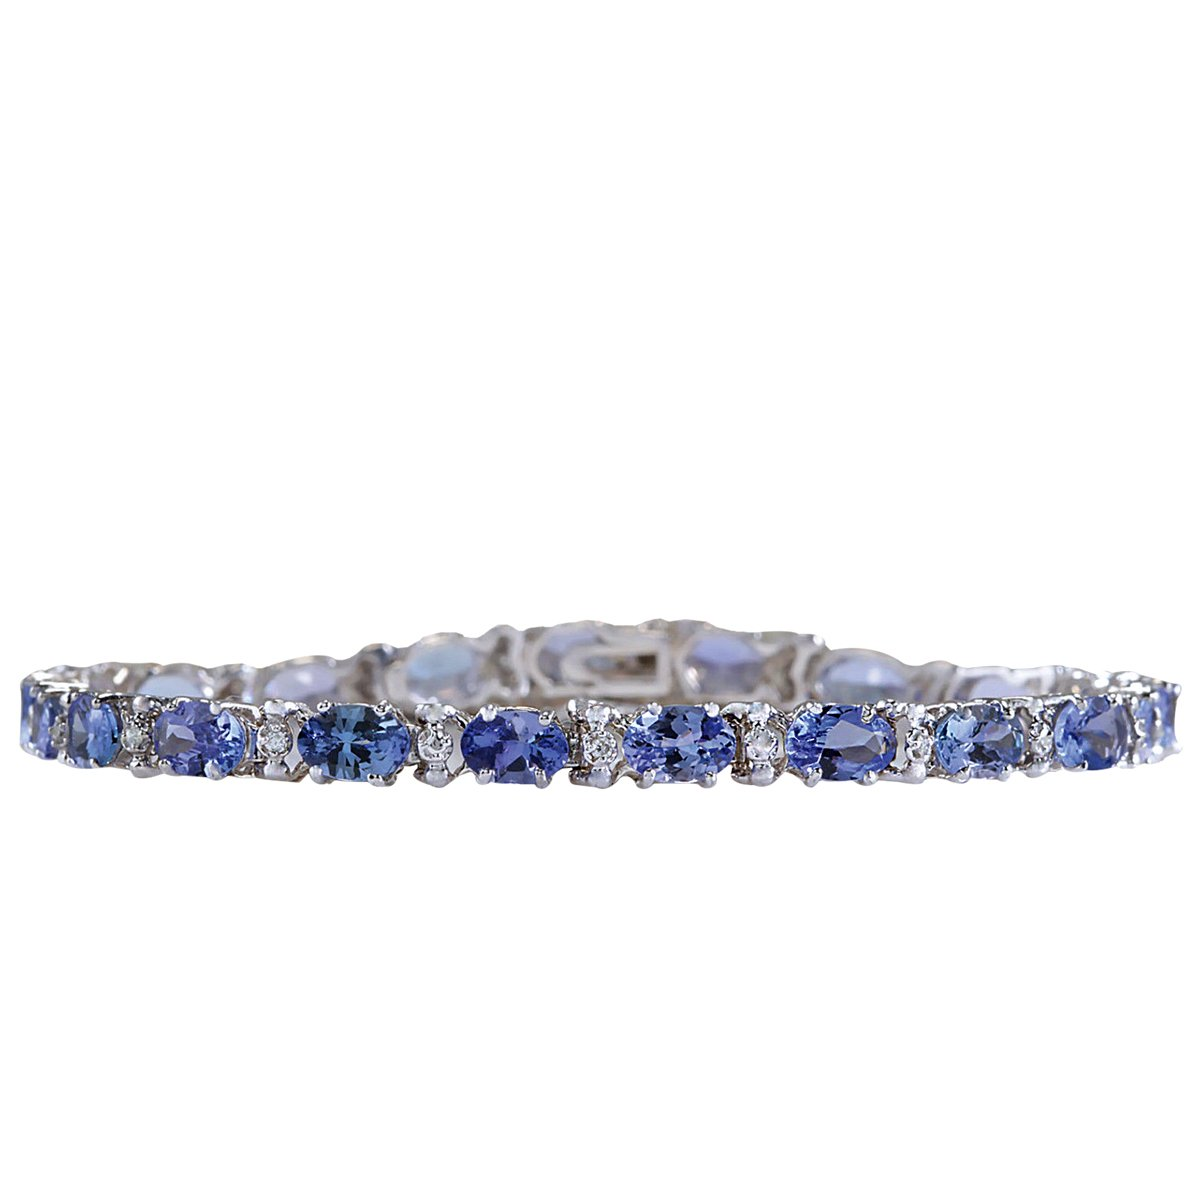 9.74 Carat Natural Blue Tanzanite and Diamond (F-G Color, VS1-VS2 Clarity) 14K White Gold Tennis Bracelet for Women Exclusively Handcrafted in USA